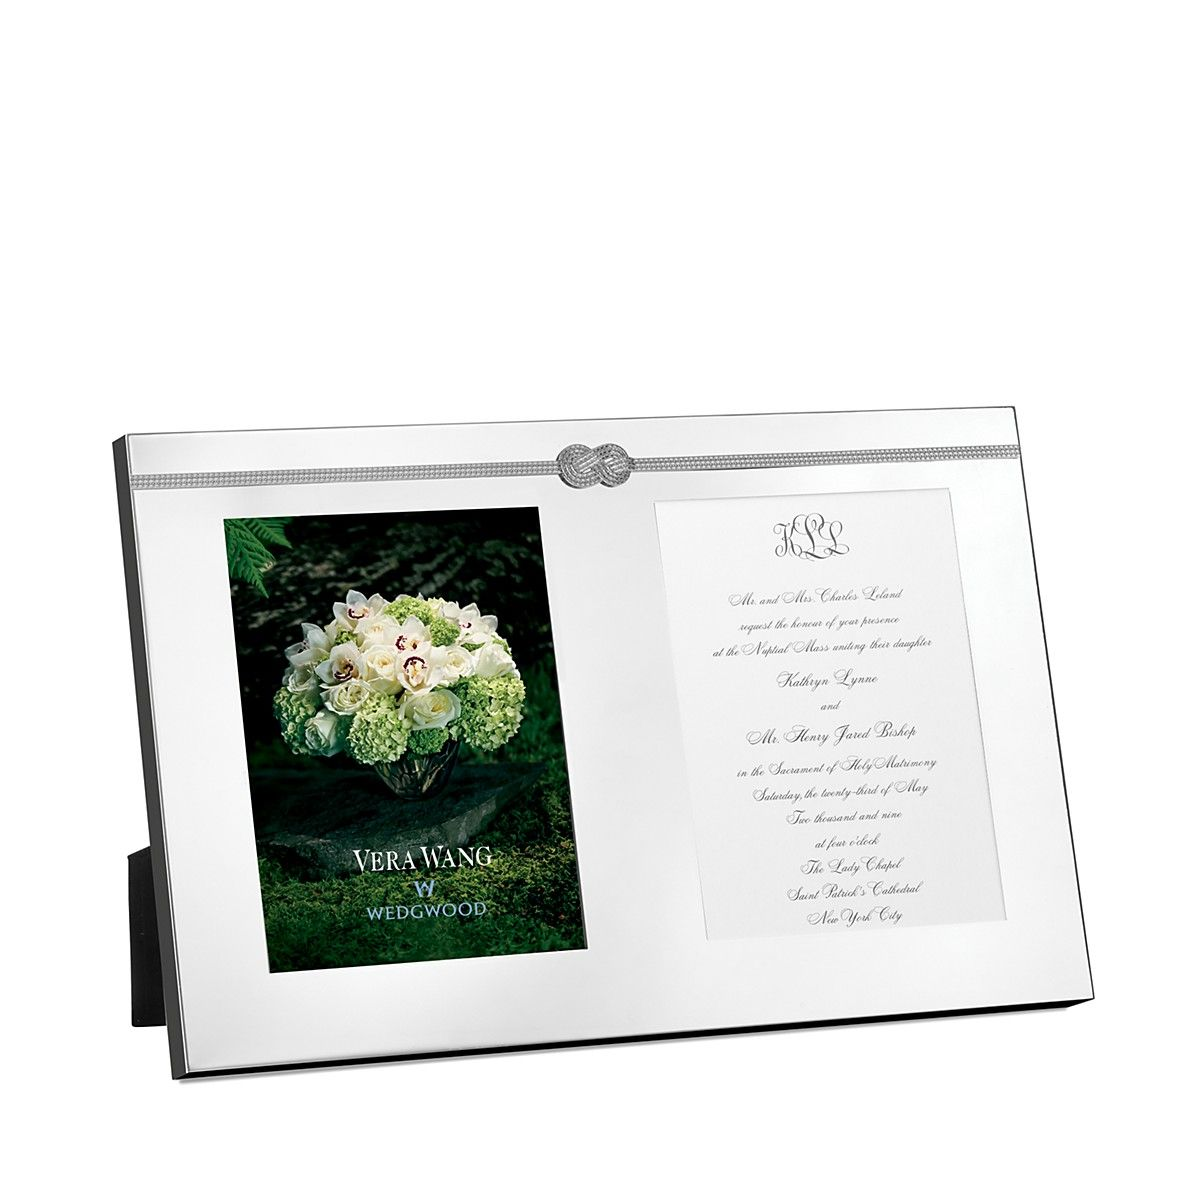 Vera Wang\'s double wedding invitation frame is perfect for framing ...